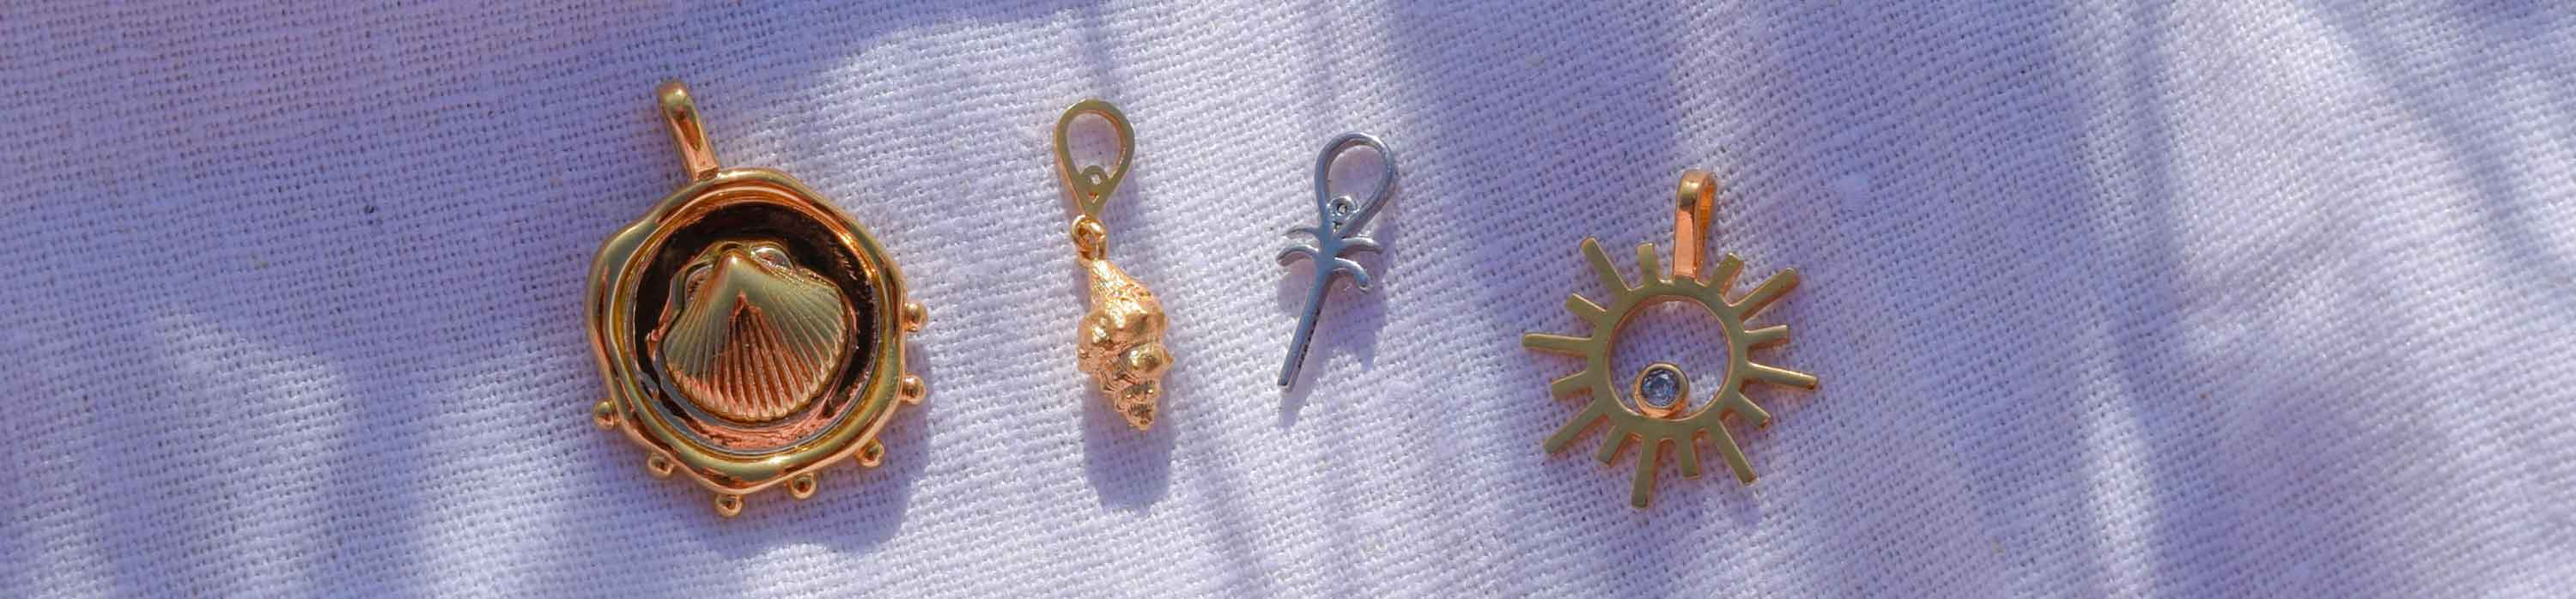 Summer Collection earring charms and necklace charms